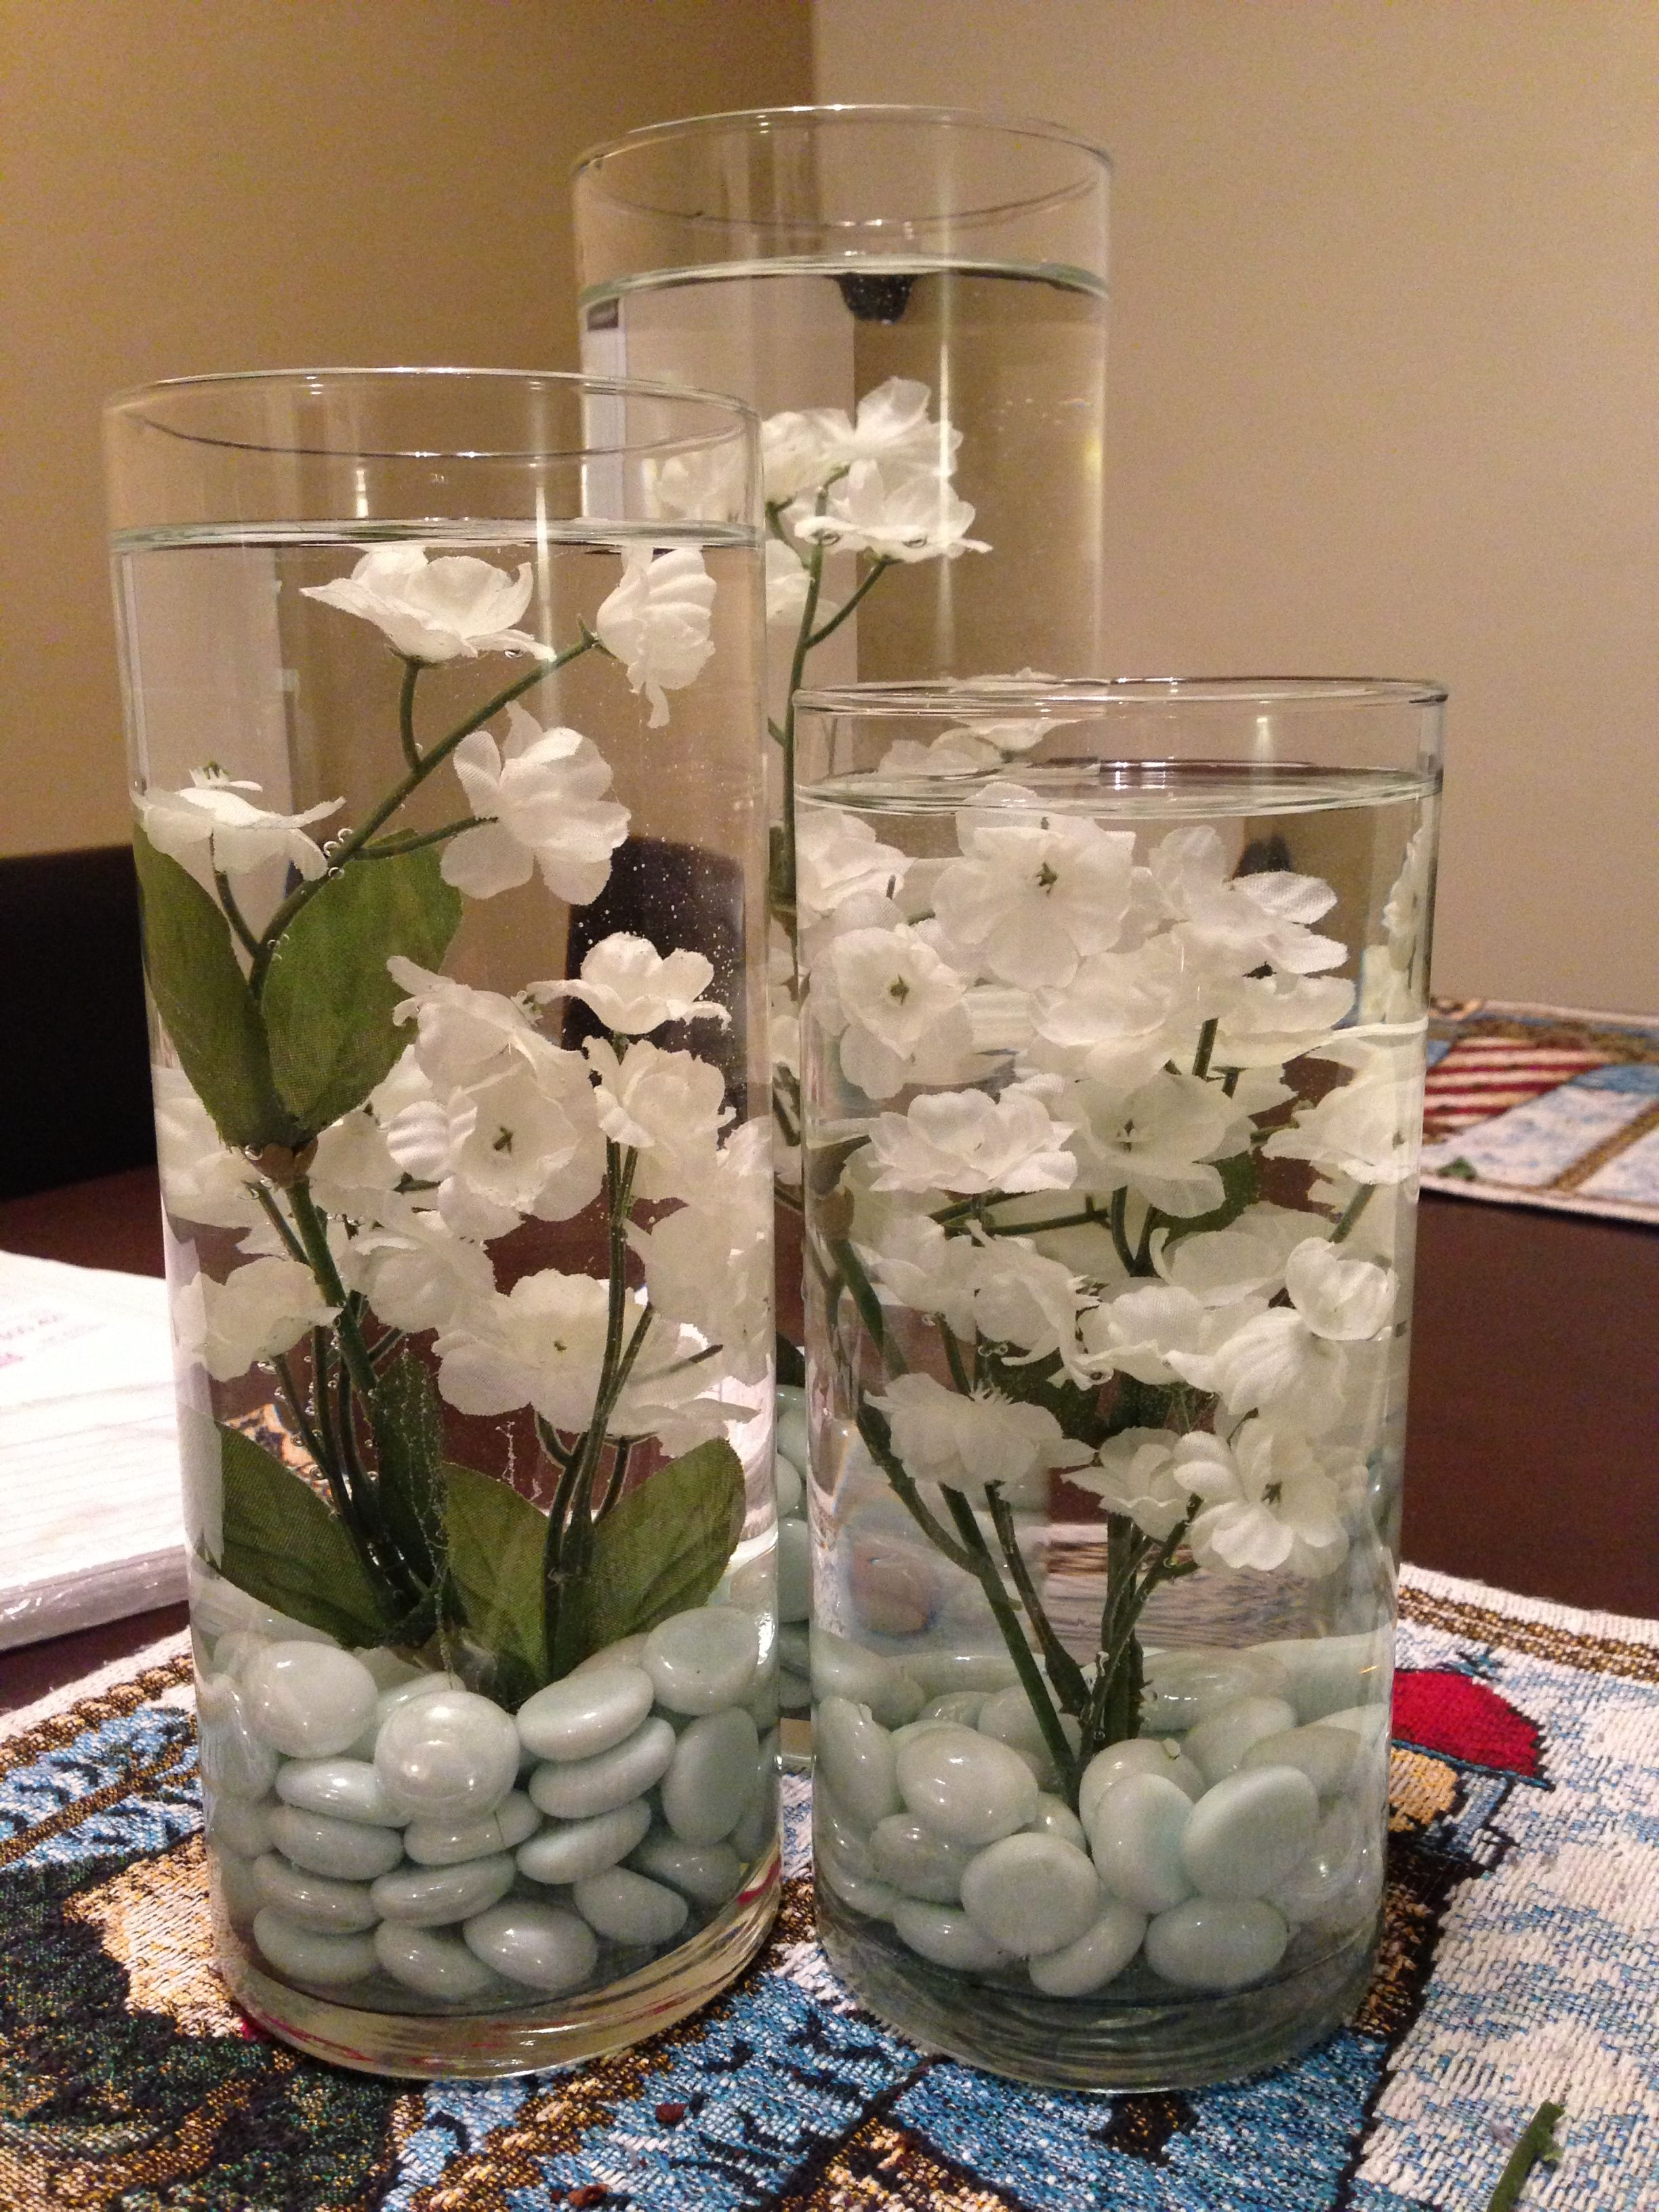 Diy dining table centerpiece it was so easy just got the supplies diy dining table centerpiece it was so easy just got the supplies at michaels dzzzfo